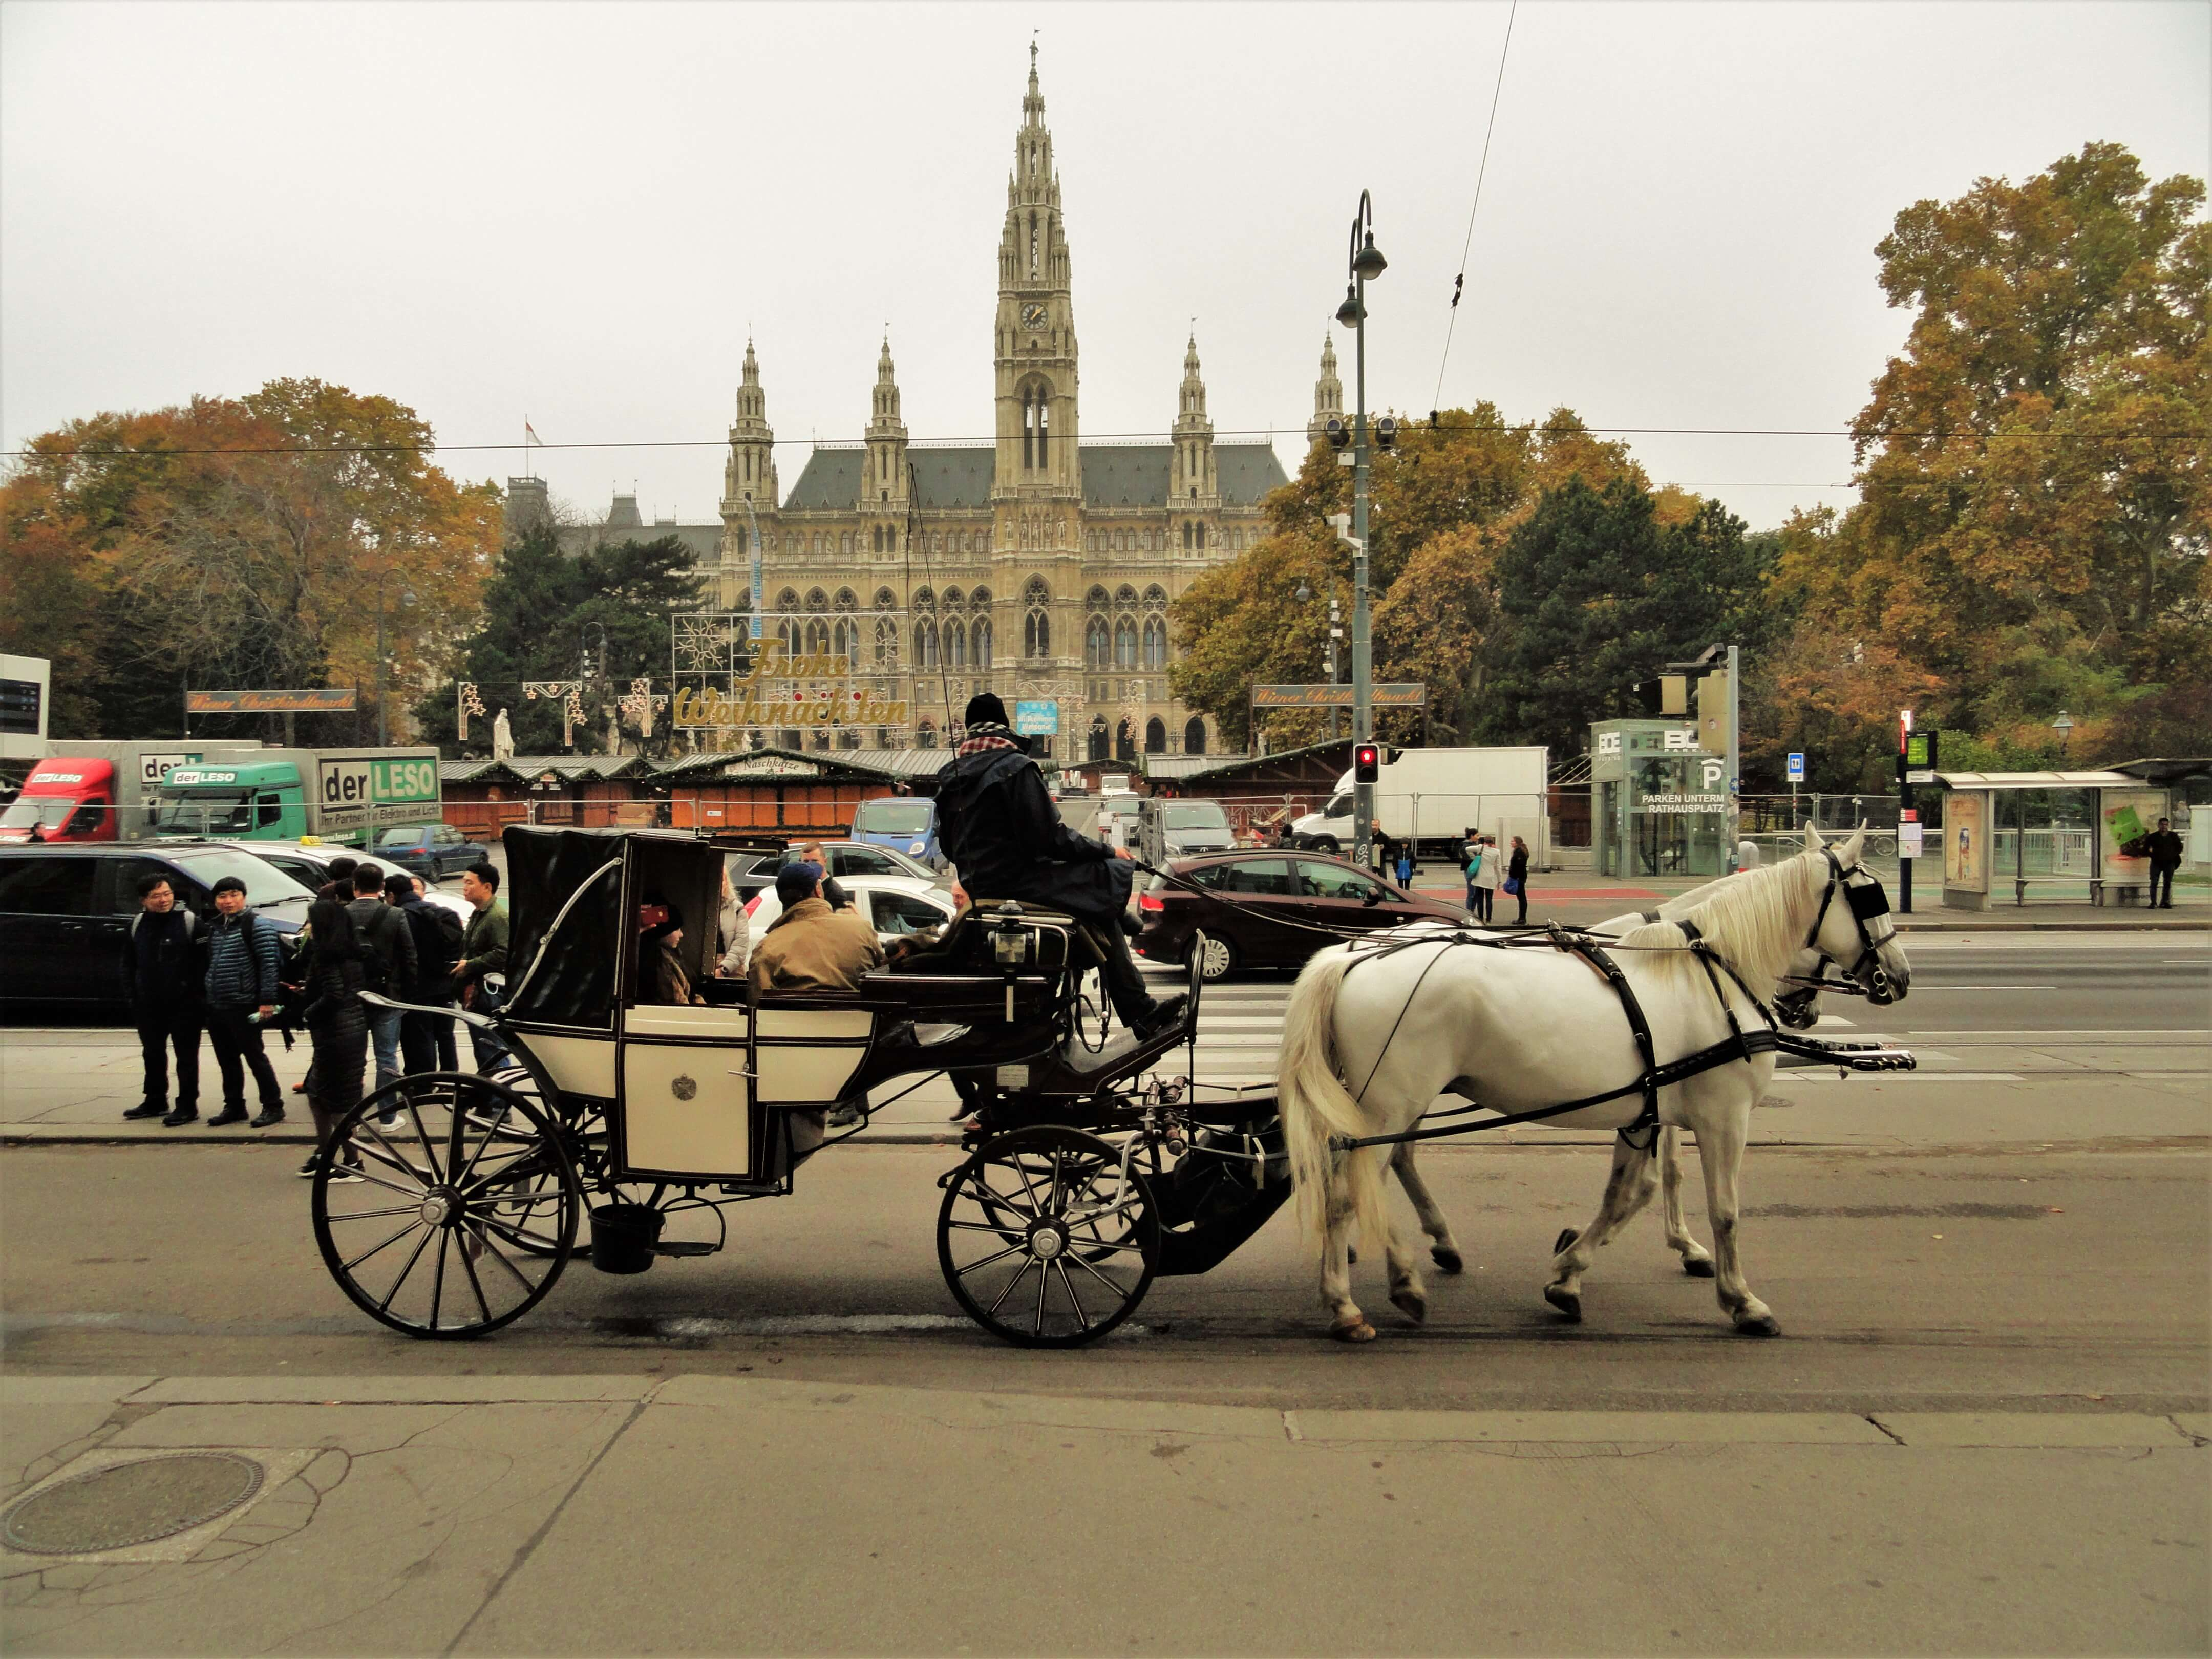 Vienn city hall horse, getting around the city